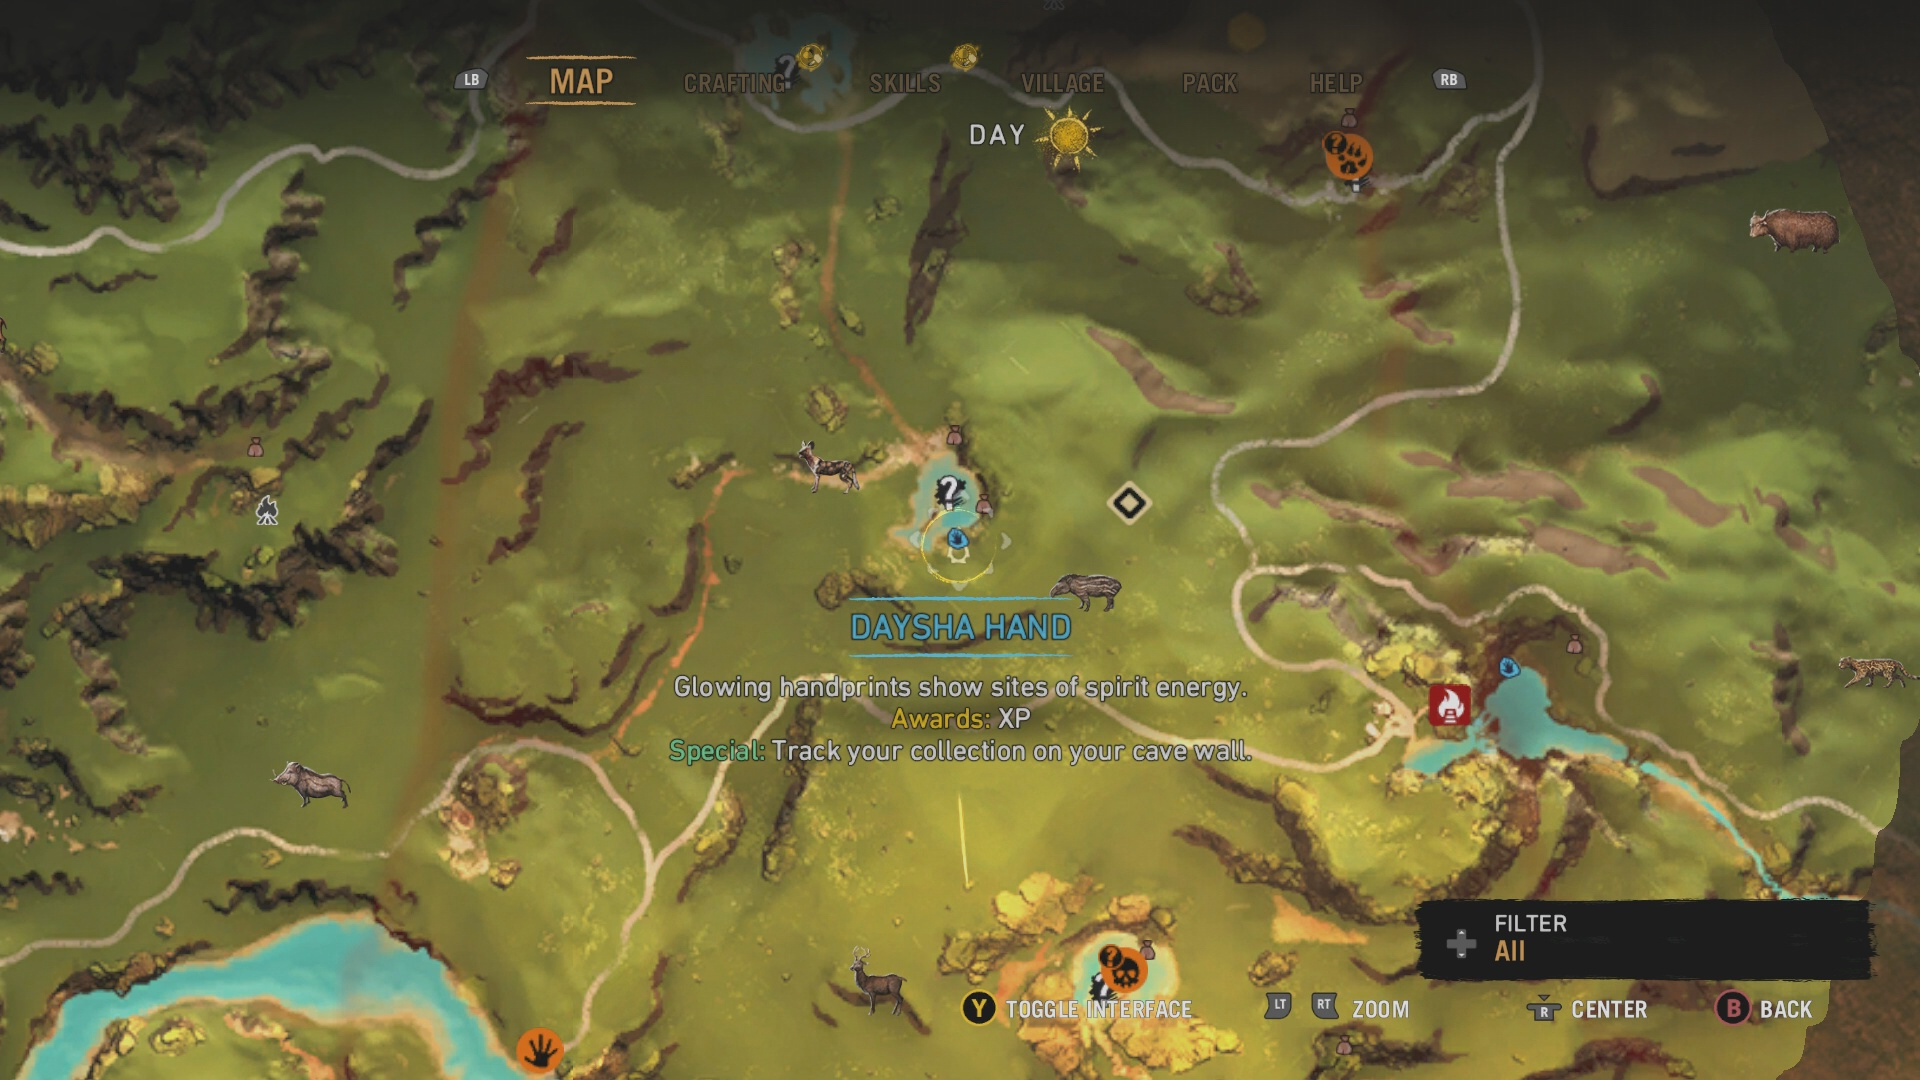 Far cry primal all daysha hand locations usgamer daysha hand 8 this daysha hand is found near a small lake just west of the roaring falls bonfire the daysha hand is atop the rock ledge at the southern gumiabroncs Choice Image